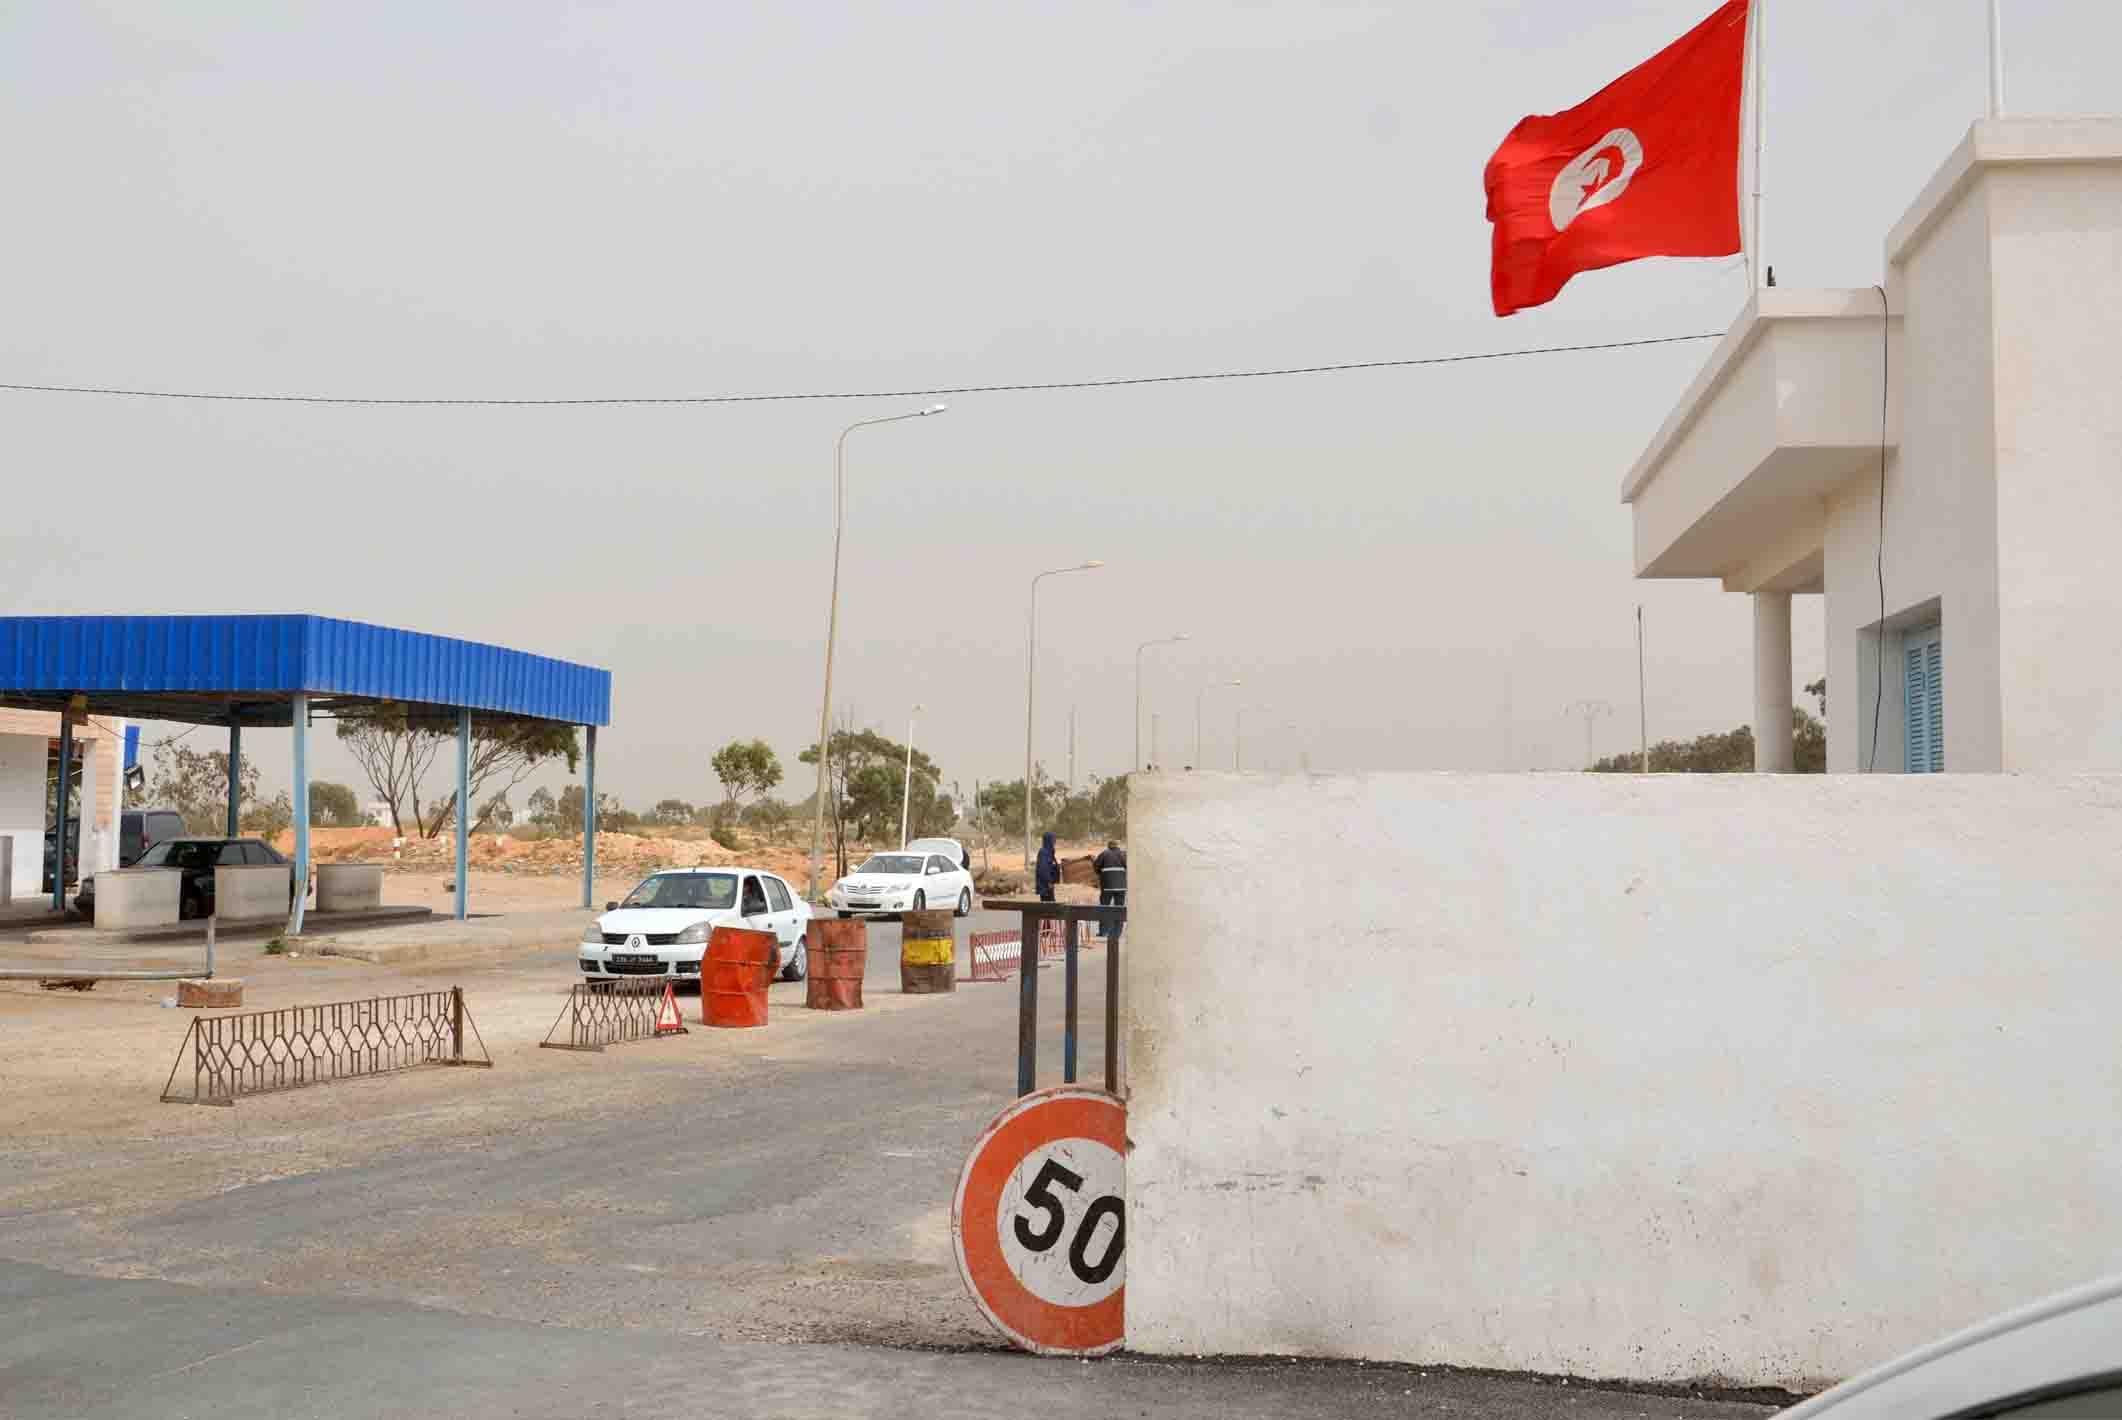 Vehicles wait near the Tunisian customs post at the Ras Jedir border crossing with Libya, south of of Ben Guerdane. (AFP)